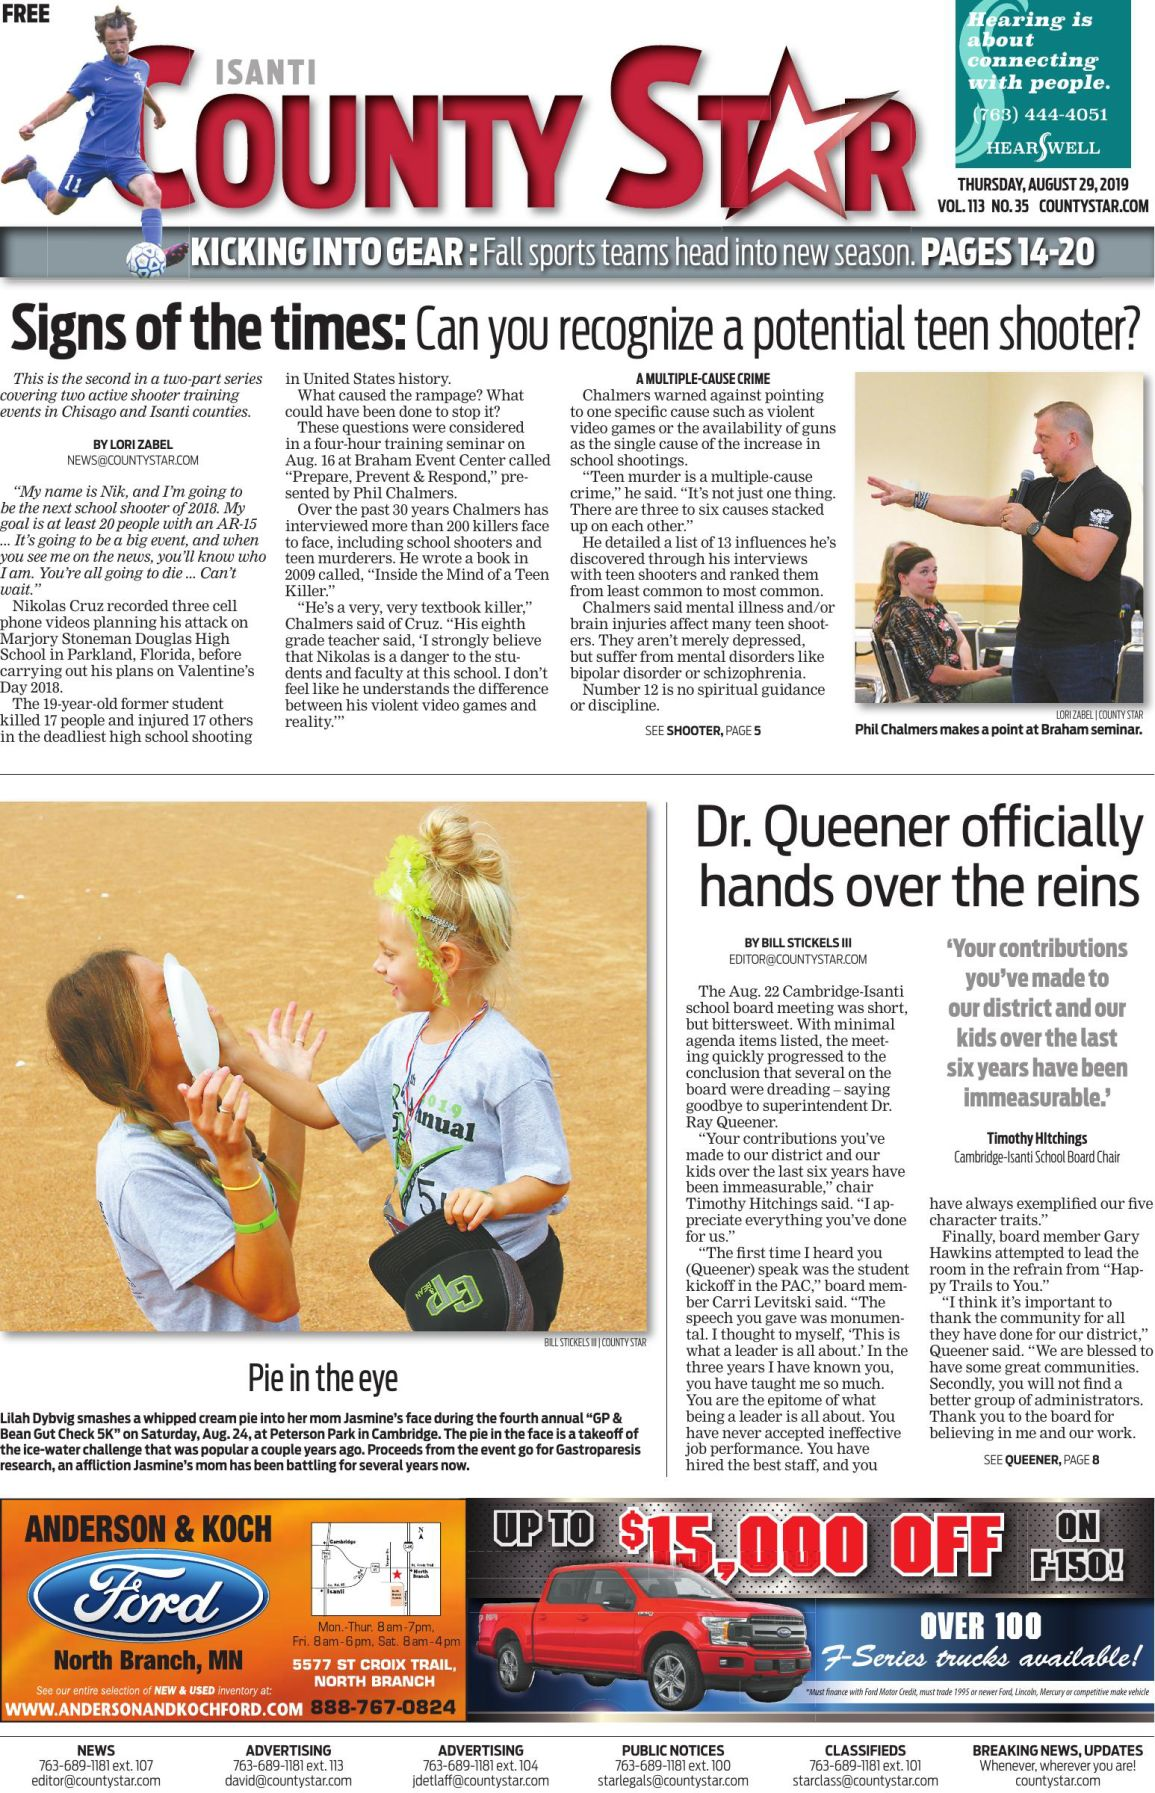 Isanti County Star August 29, 2019 e-edition